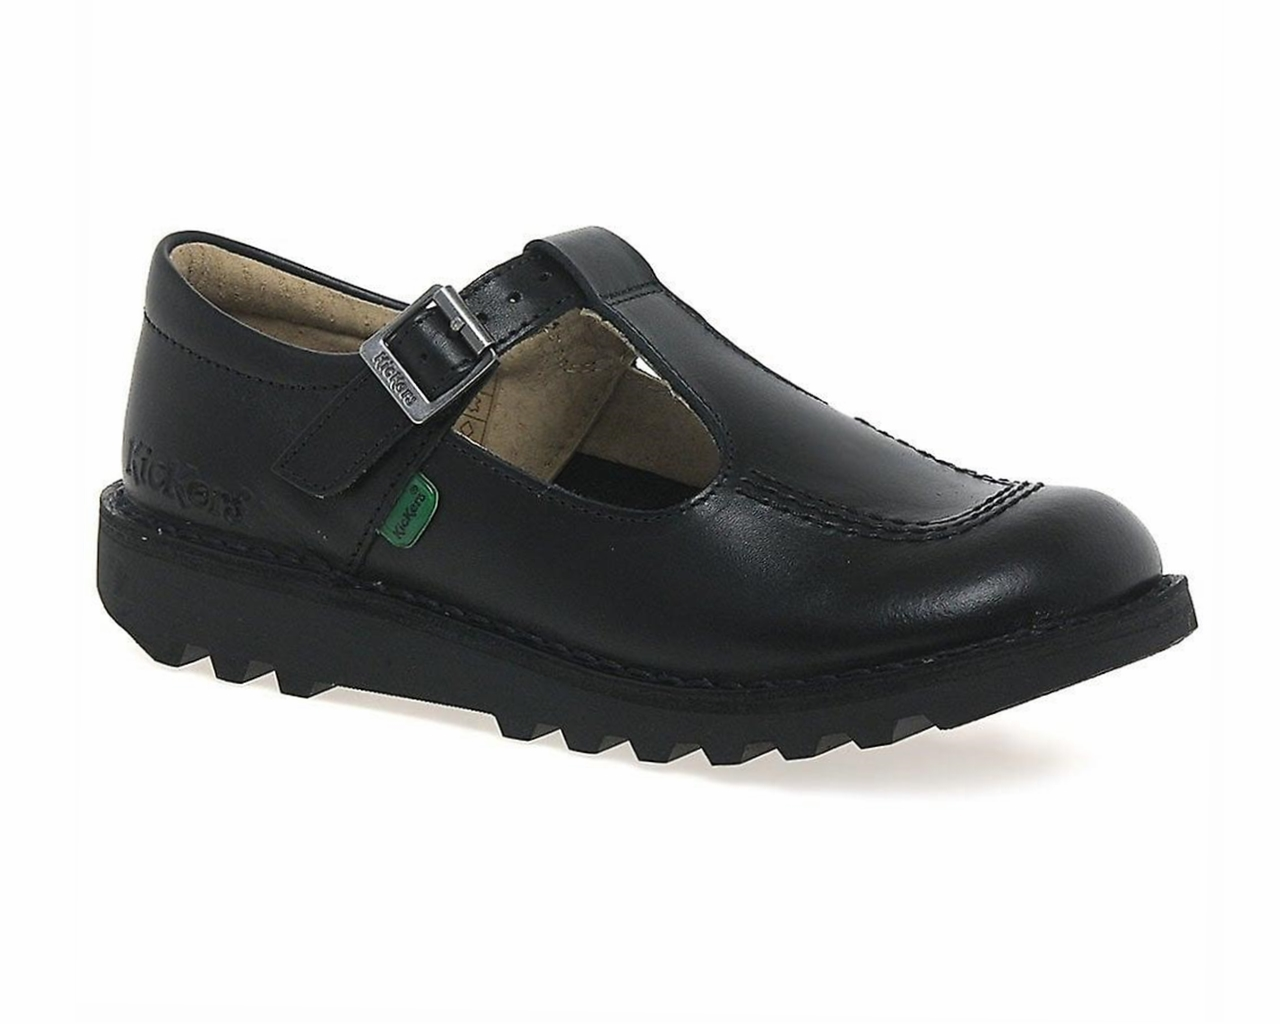 4b9bf2121a501 Kickers Kick T Y T Bar Leather Girls Shoes Black School Work Shoes ...